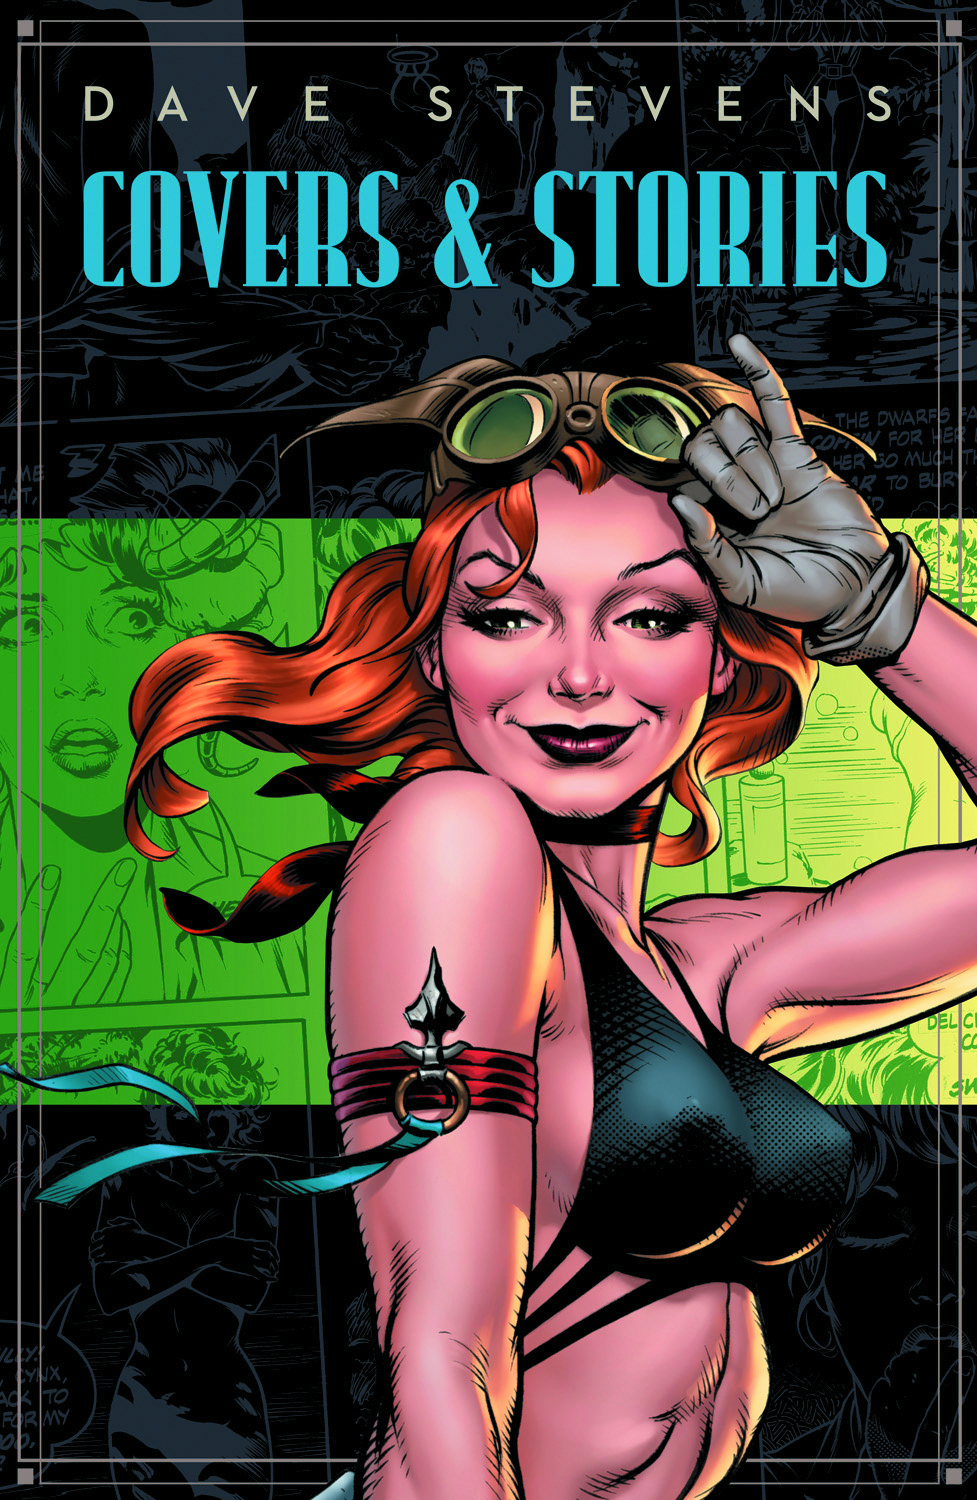 DAVE STEVENS STORIES & COVERS HC